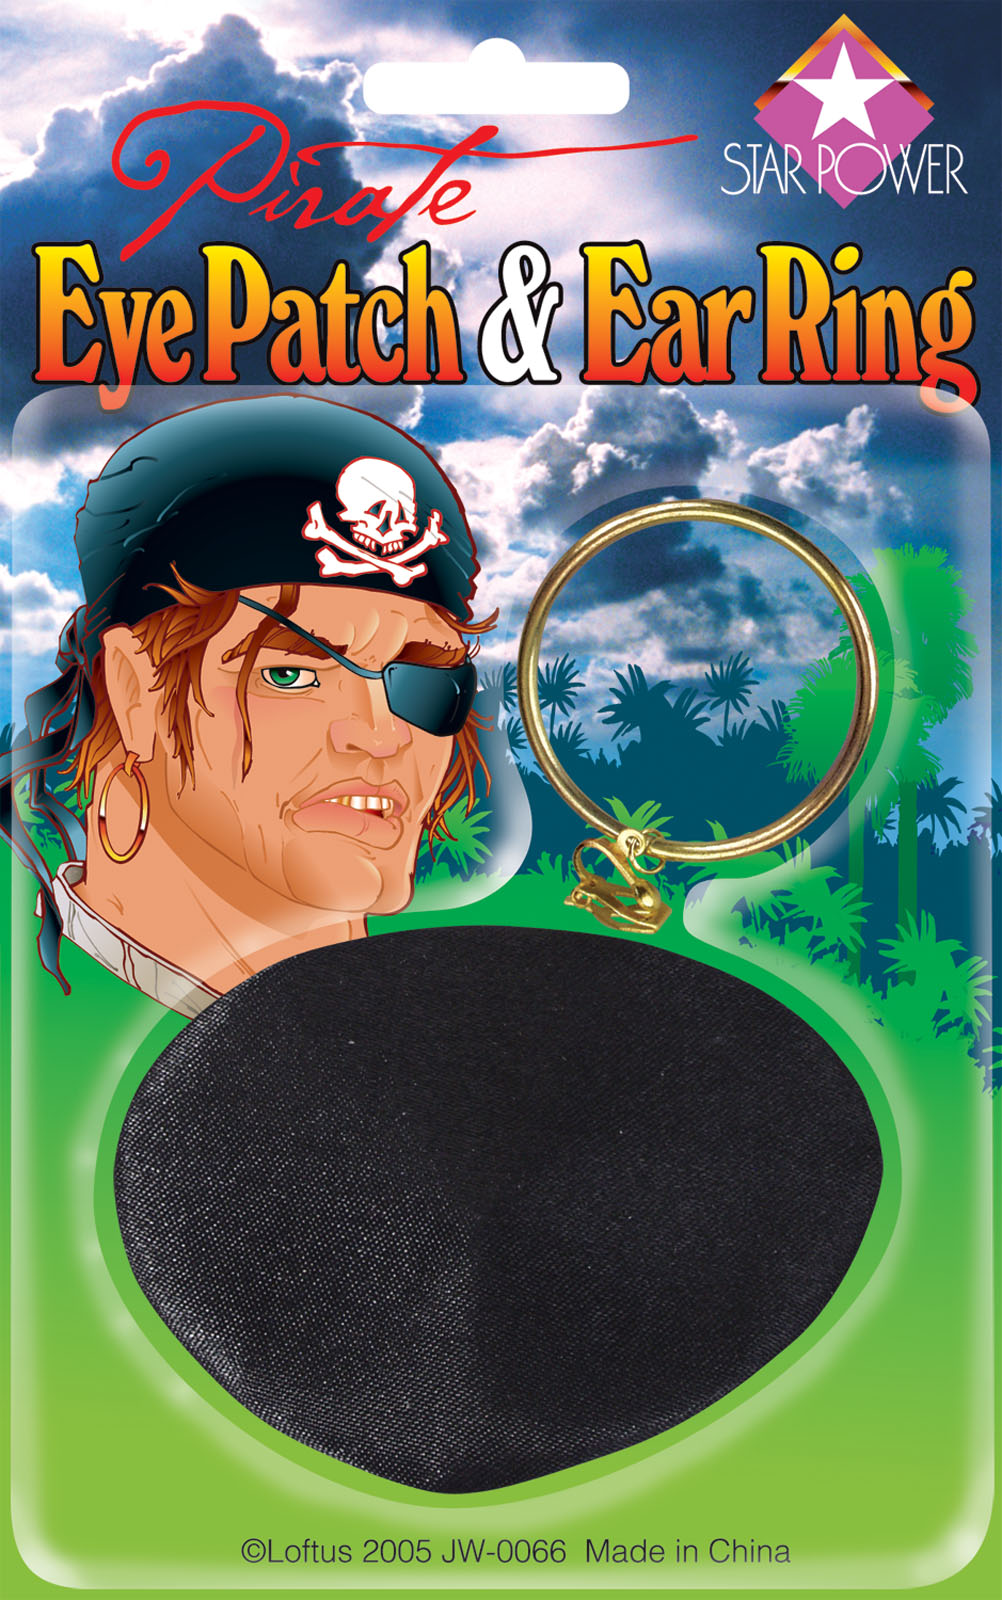 Star Power Child Pirate Eyepatch Earring Accessory Kit, Black Gold, One Size by Loftus International